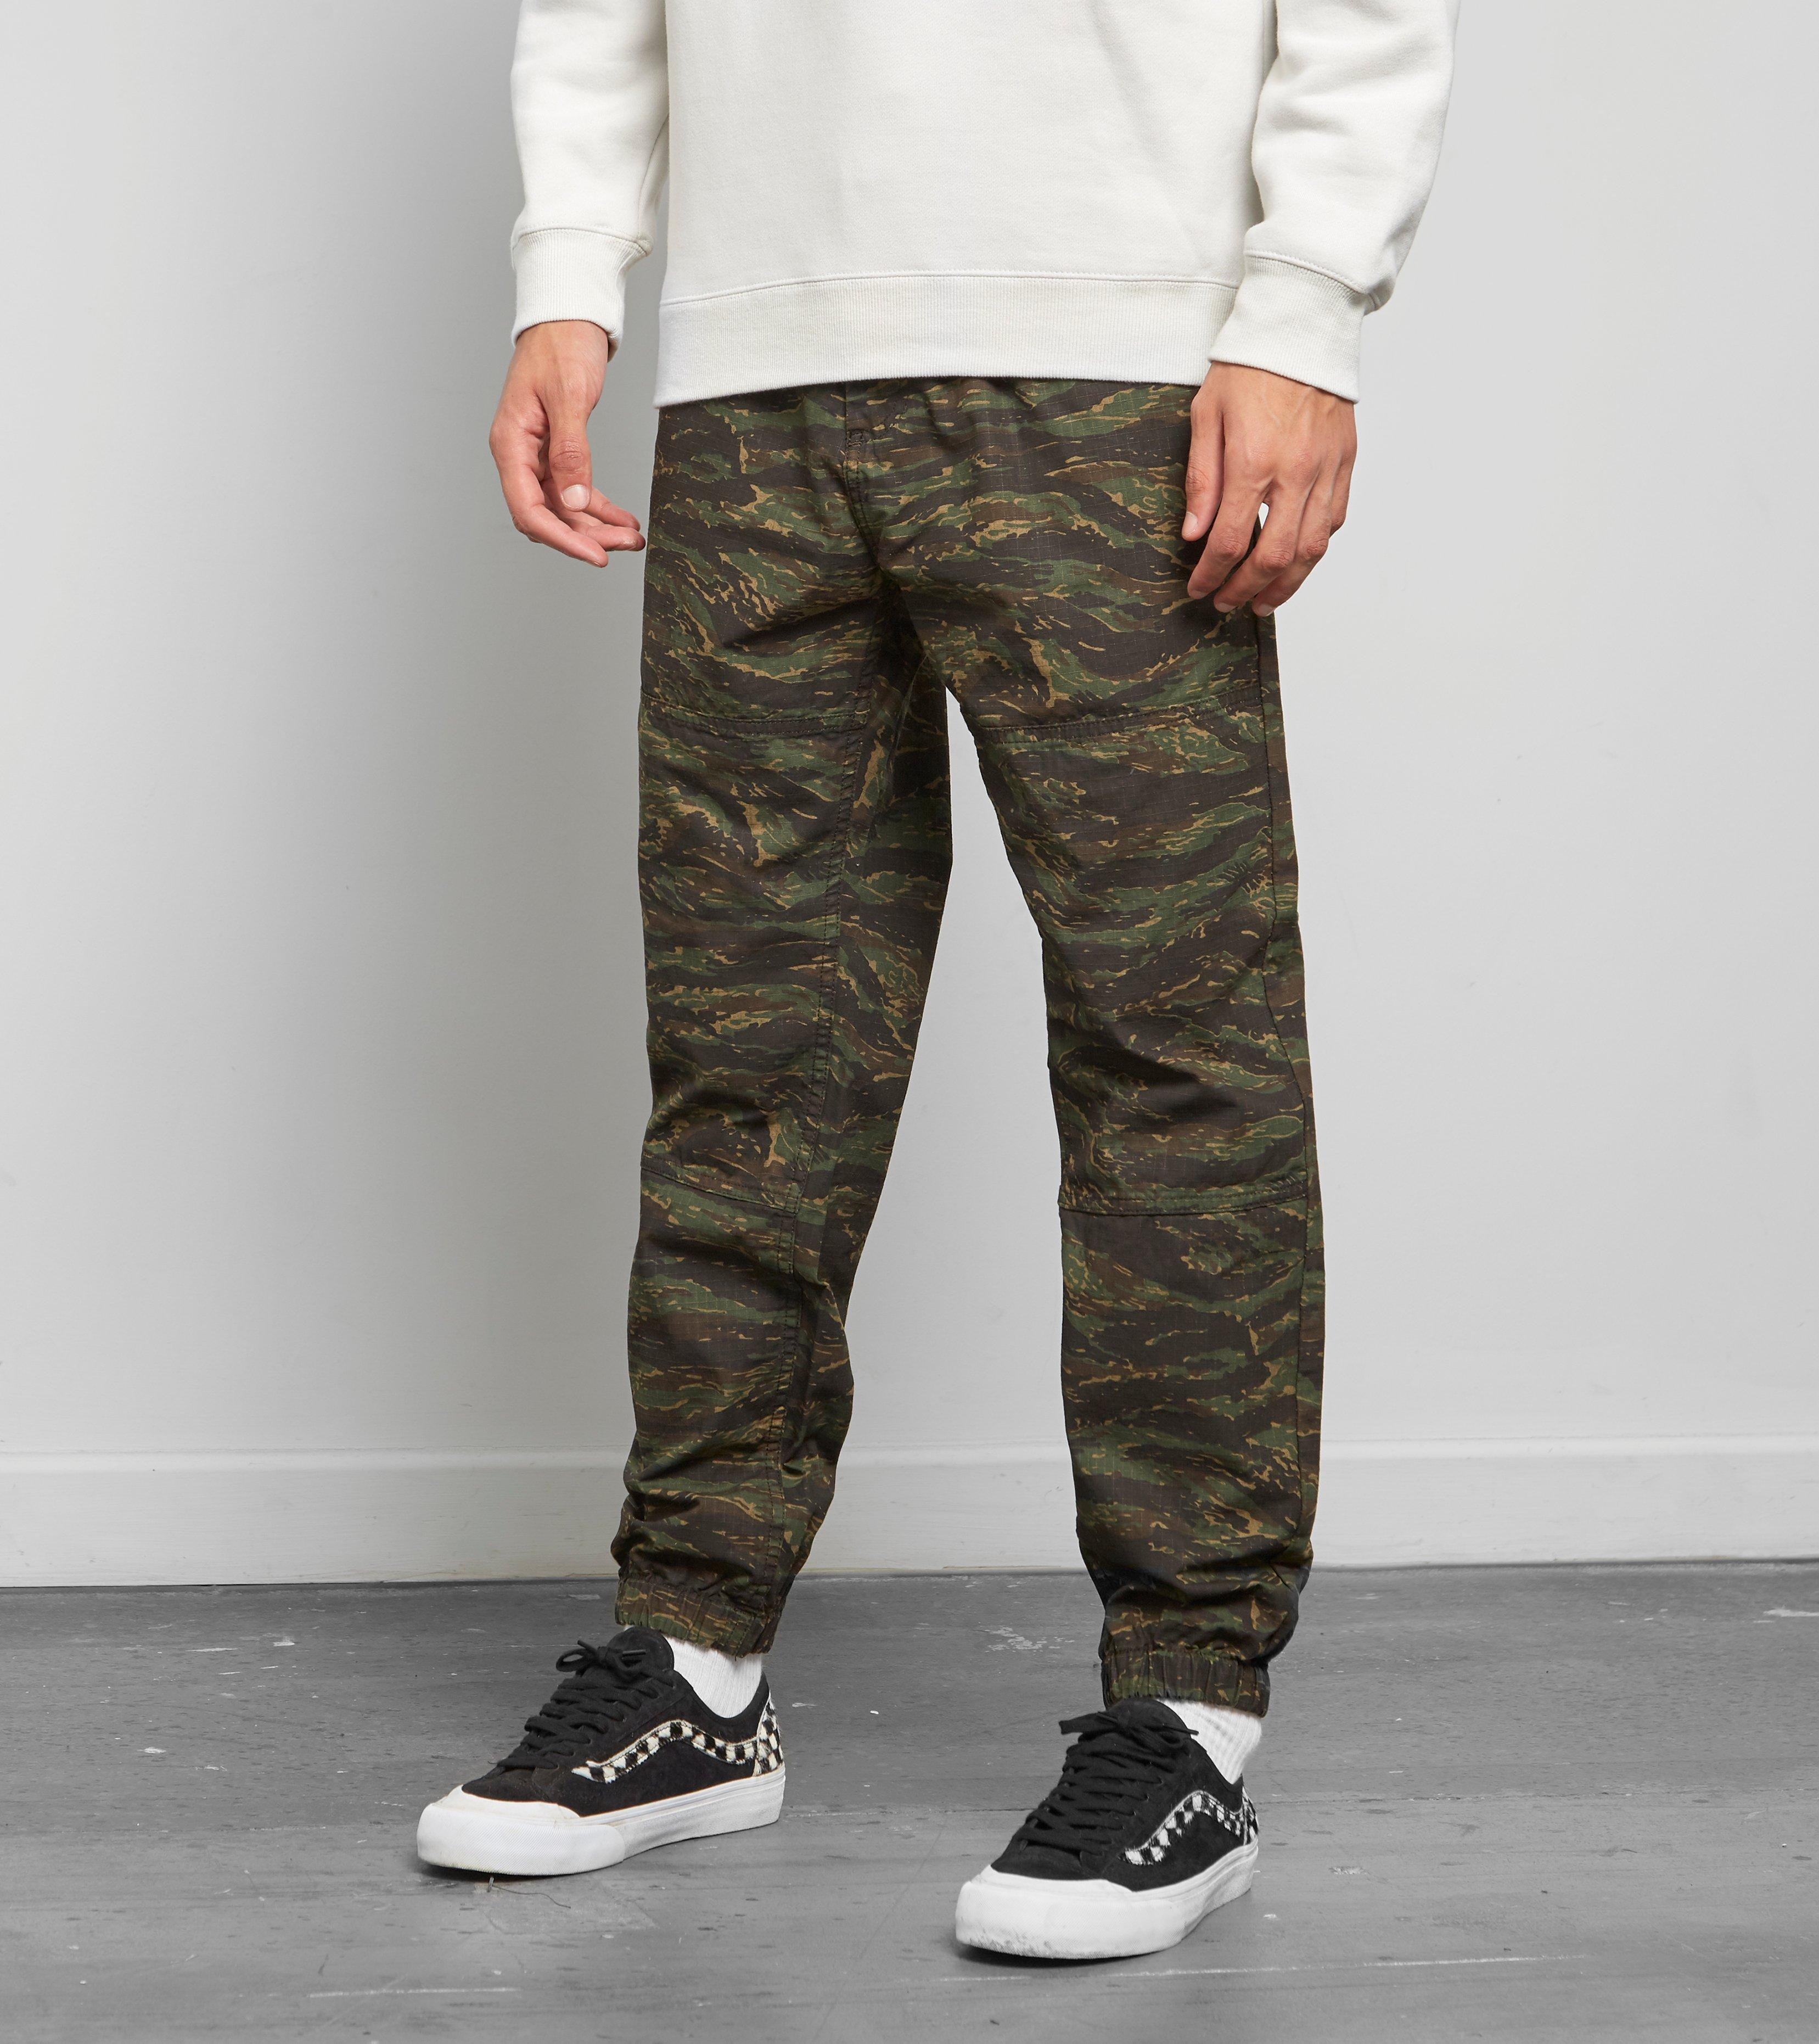 d2fb8741e0 carhartt wip pants amazon Lyst - Carhartt WIP Marshall Jogger Trousers for  Men